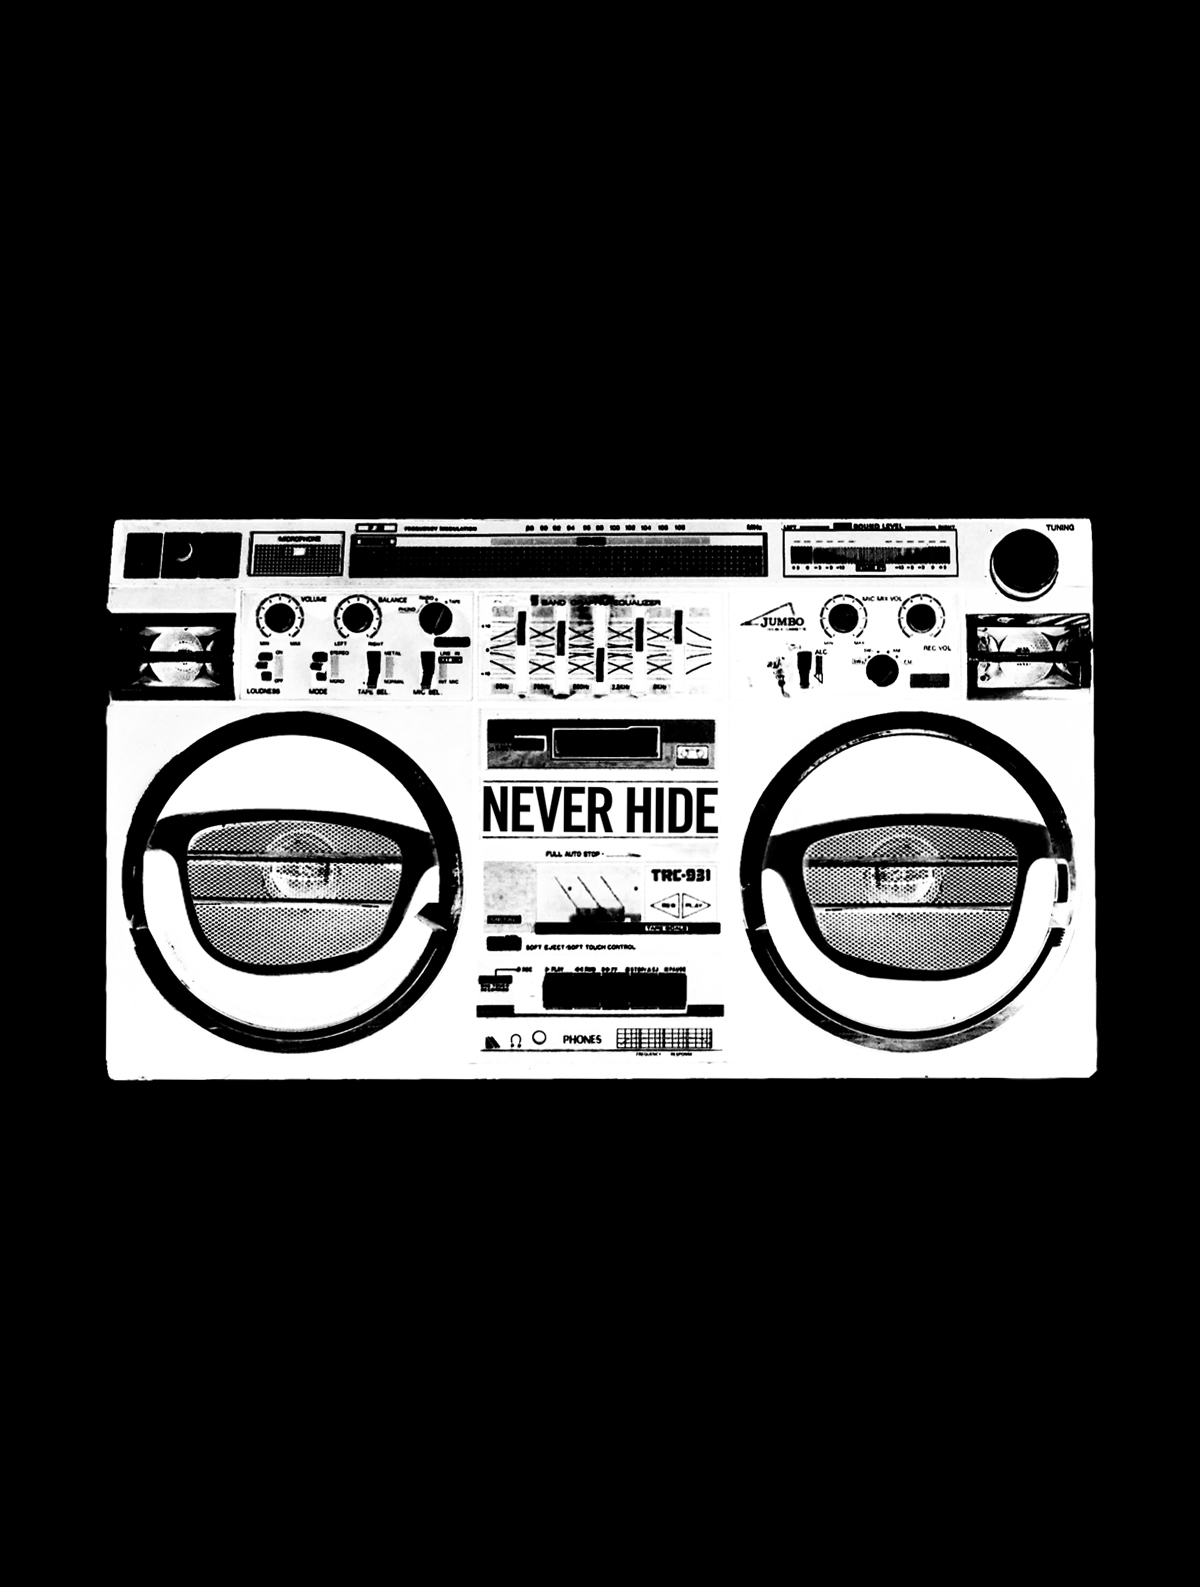 Ray-Ban, Never Hide, Boombox